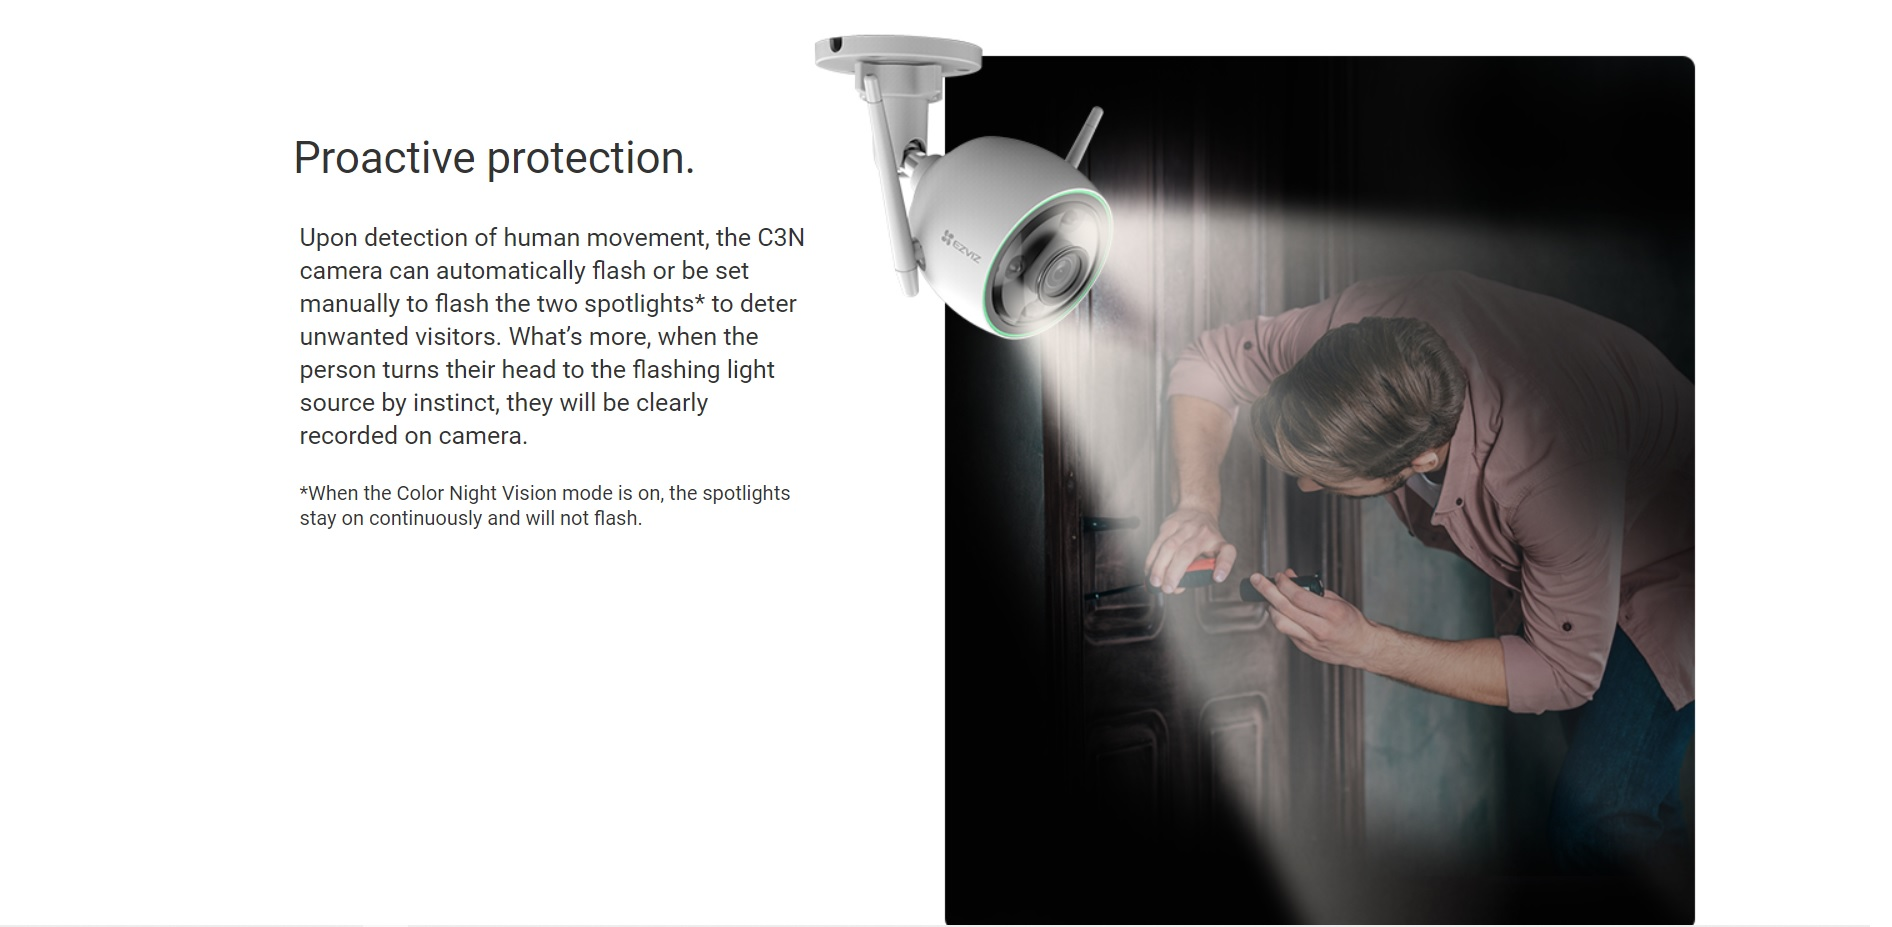 EZVIZ HD Outdoor Smart Wi-Fi Camera C3N